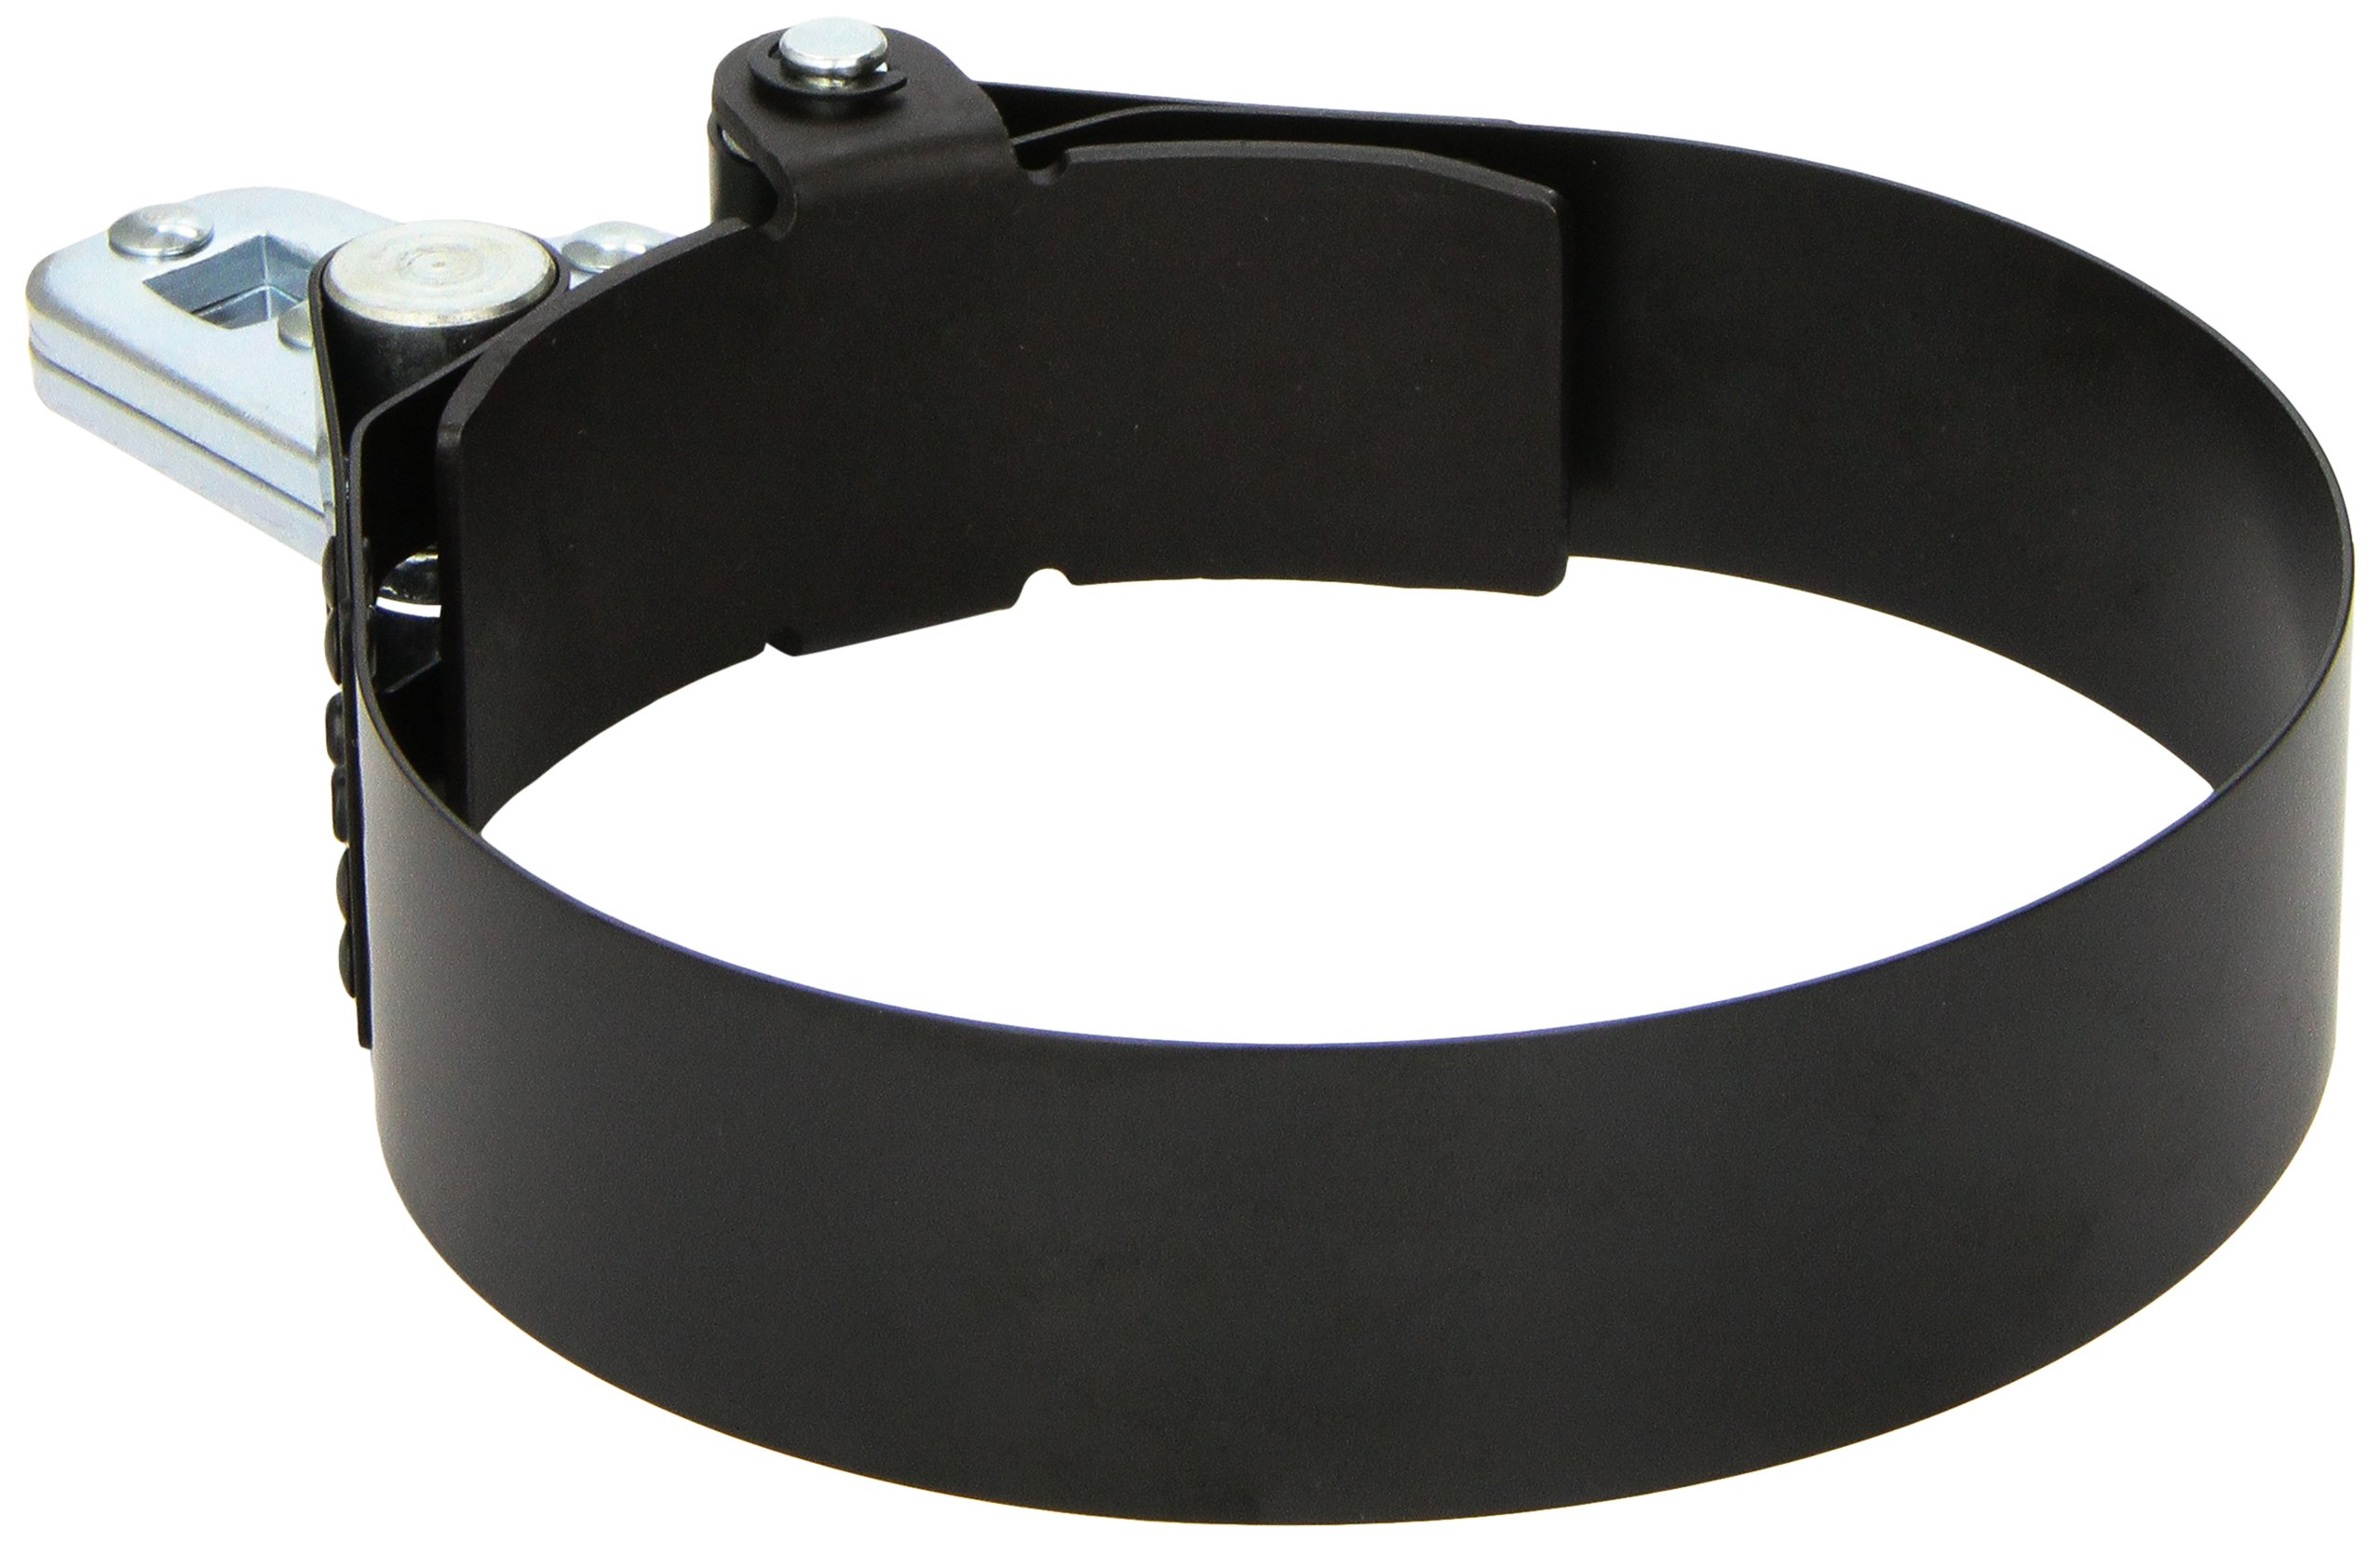 GEARWRENCH 2322D Heavy Duty Oil Filter Wrench (5-1/4'' to 5-3/4'')